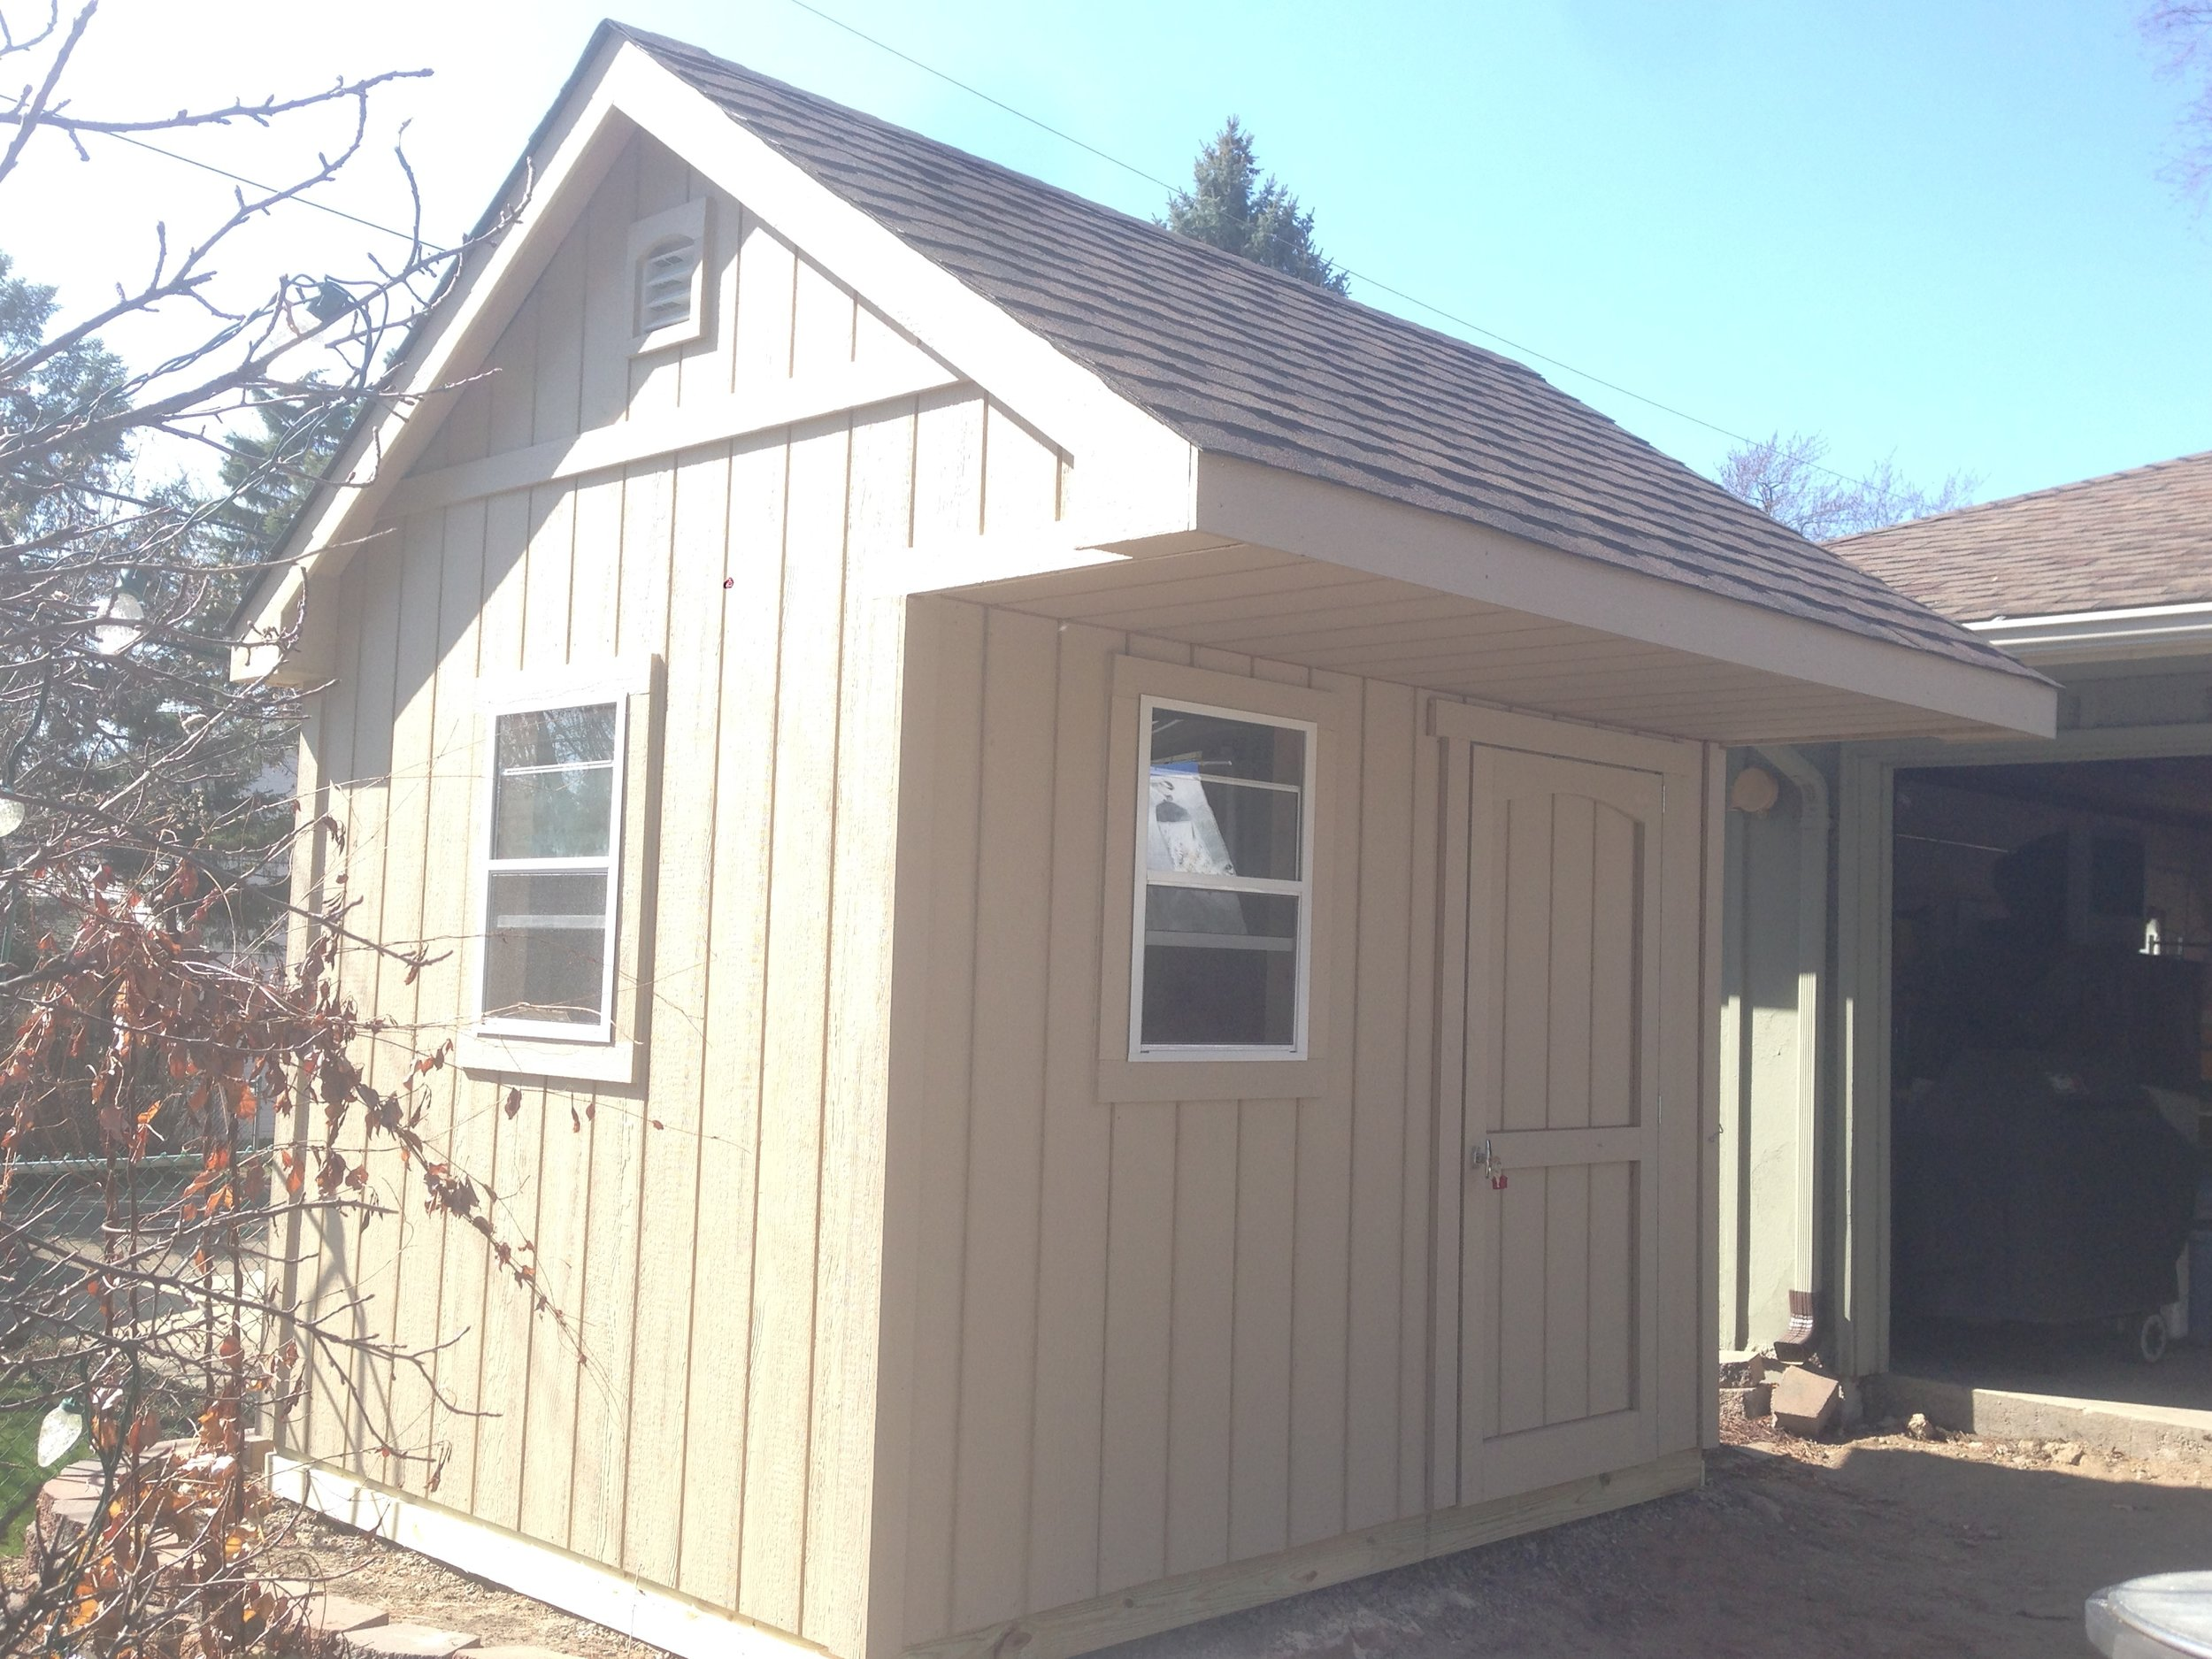 10x10x11 Gable Deluxe w/ Porch